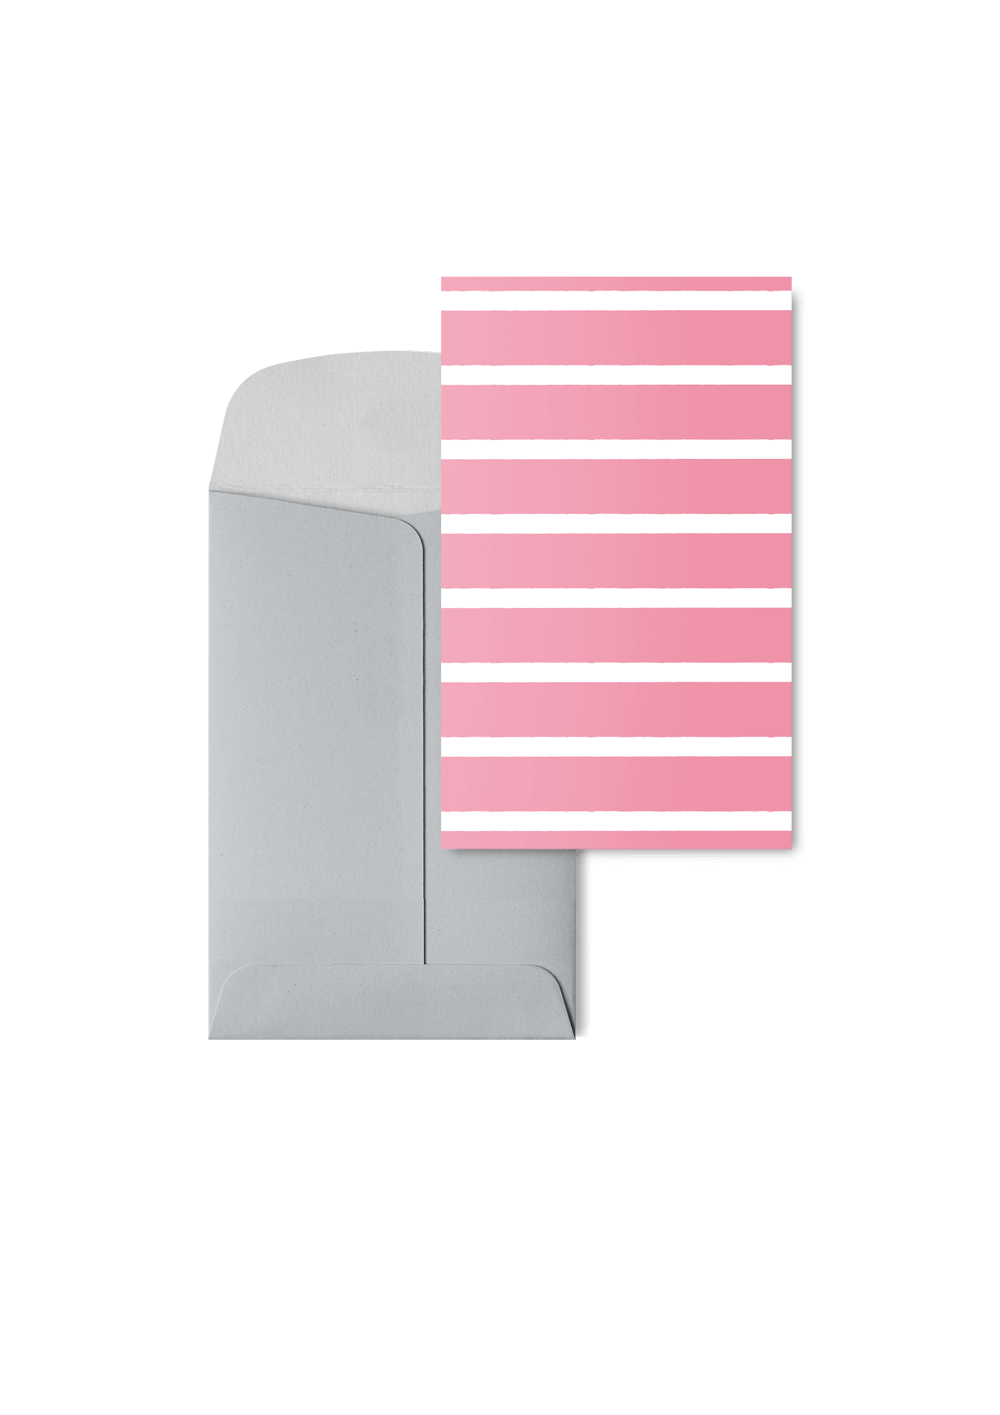 Stripetown Pink, 6 Karten Set by Karten Design Fabrik. Supplier of designer Greeting Cards, Gift Wrap, Christmas Cards & Invitations to leading design stores including Connox, Modulor, Magazin & Manufactum.